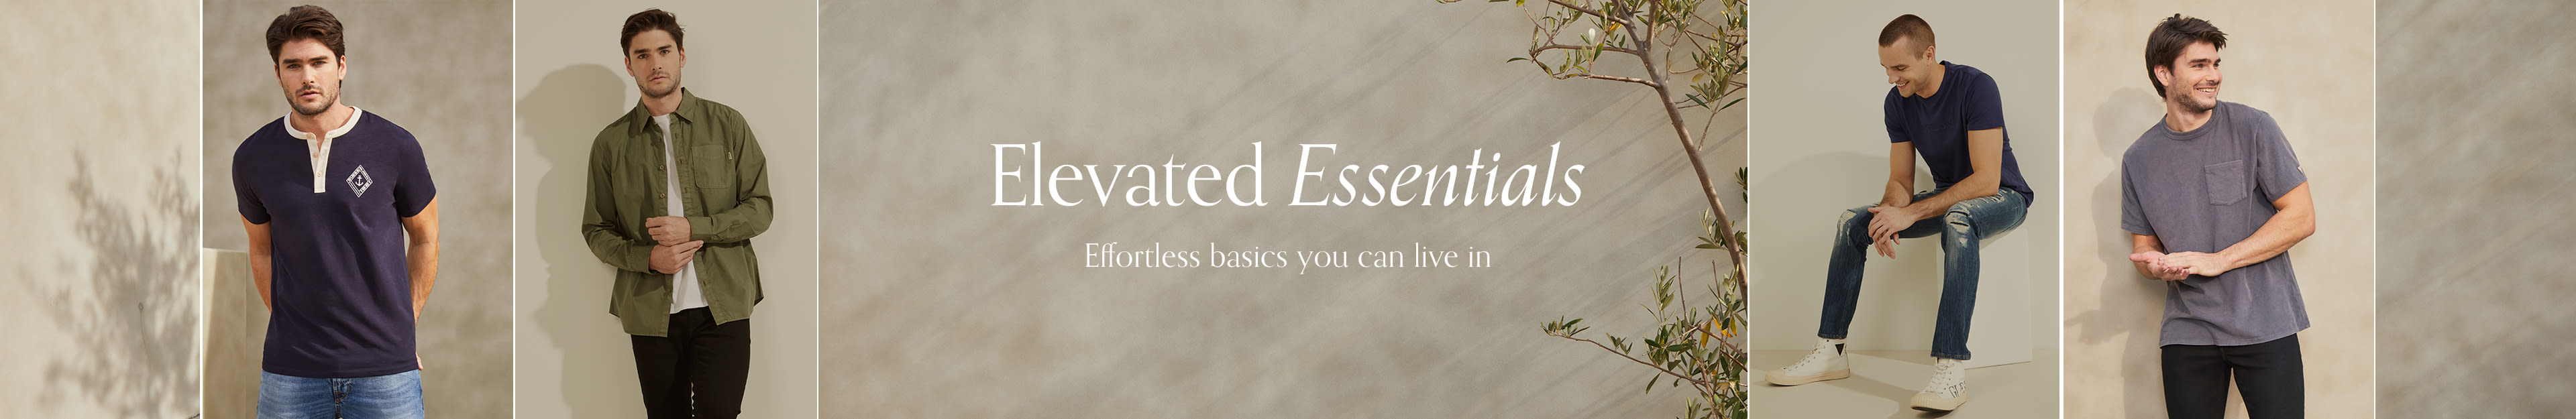 Elevated Essentials: Effortless basics you can live in